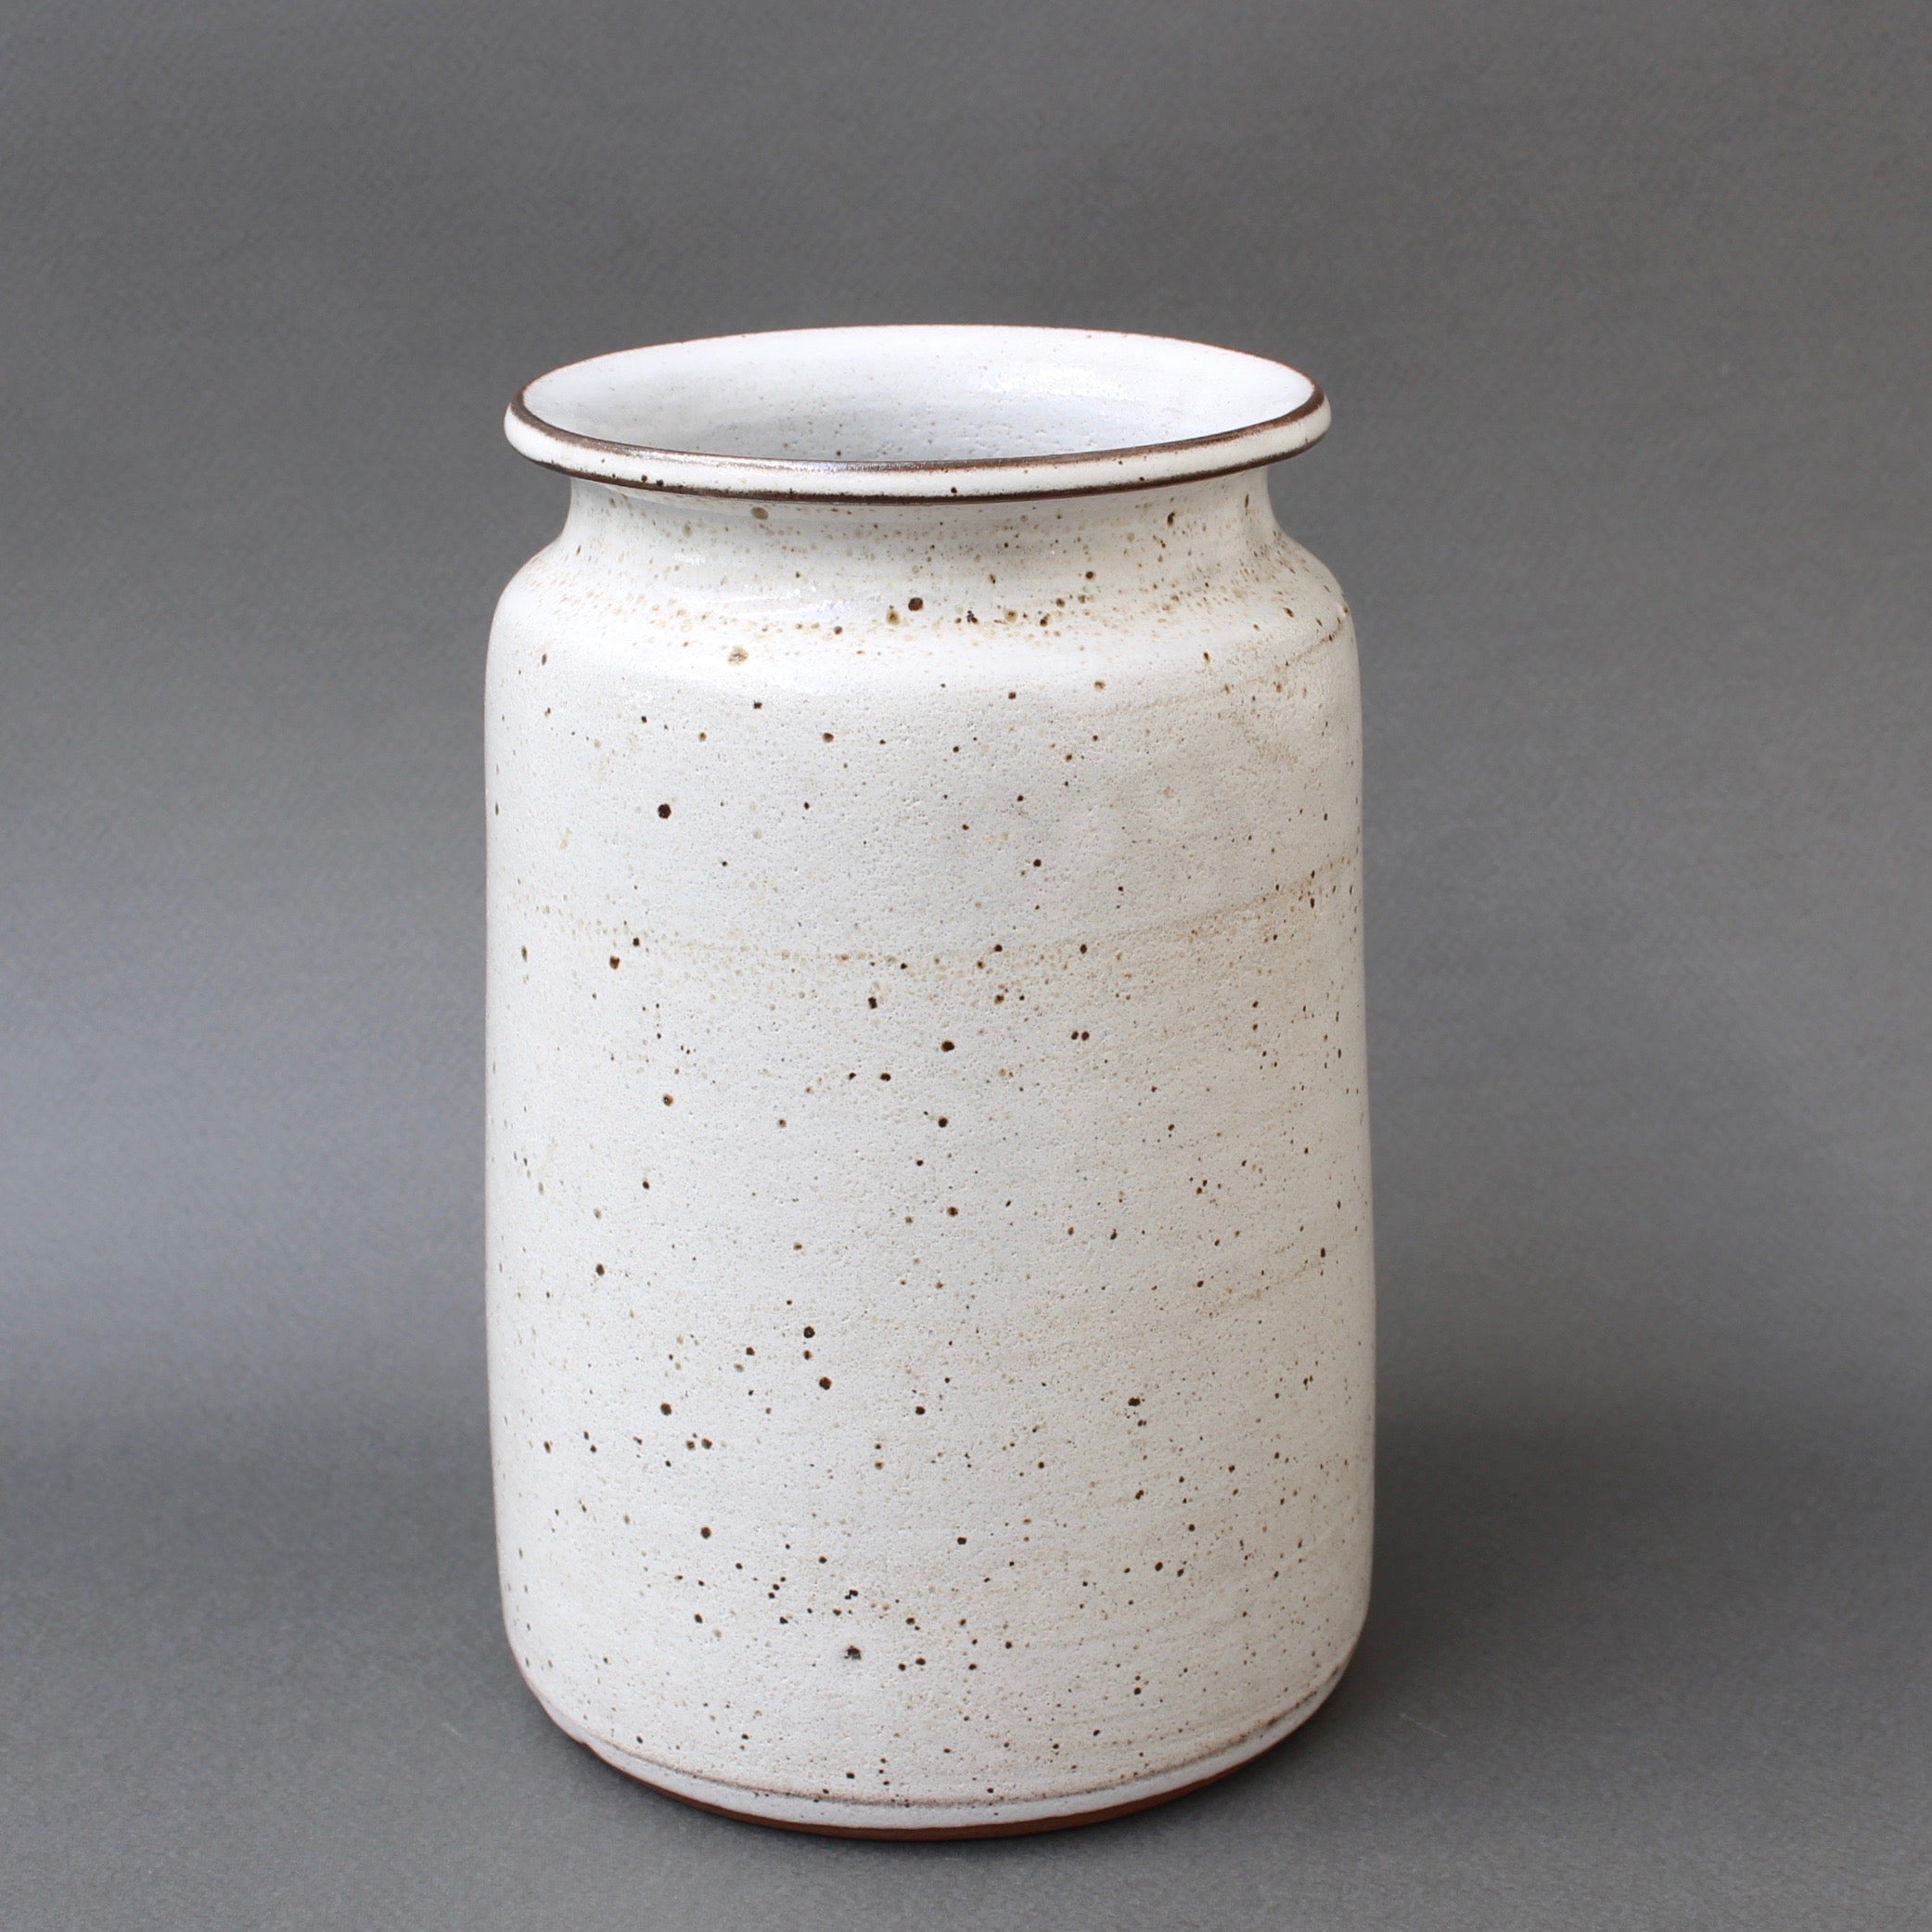 Mid-Century French Ceramic Vase by Jacques Pouchain / Atelier Dieulefit (circa 1960s)